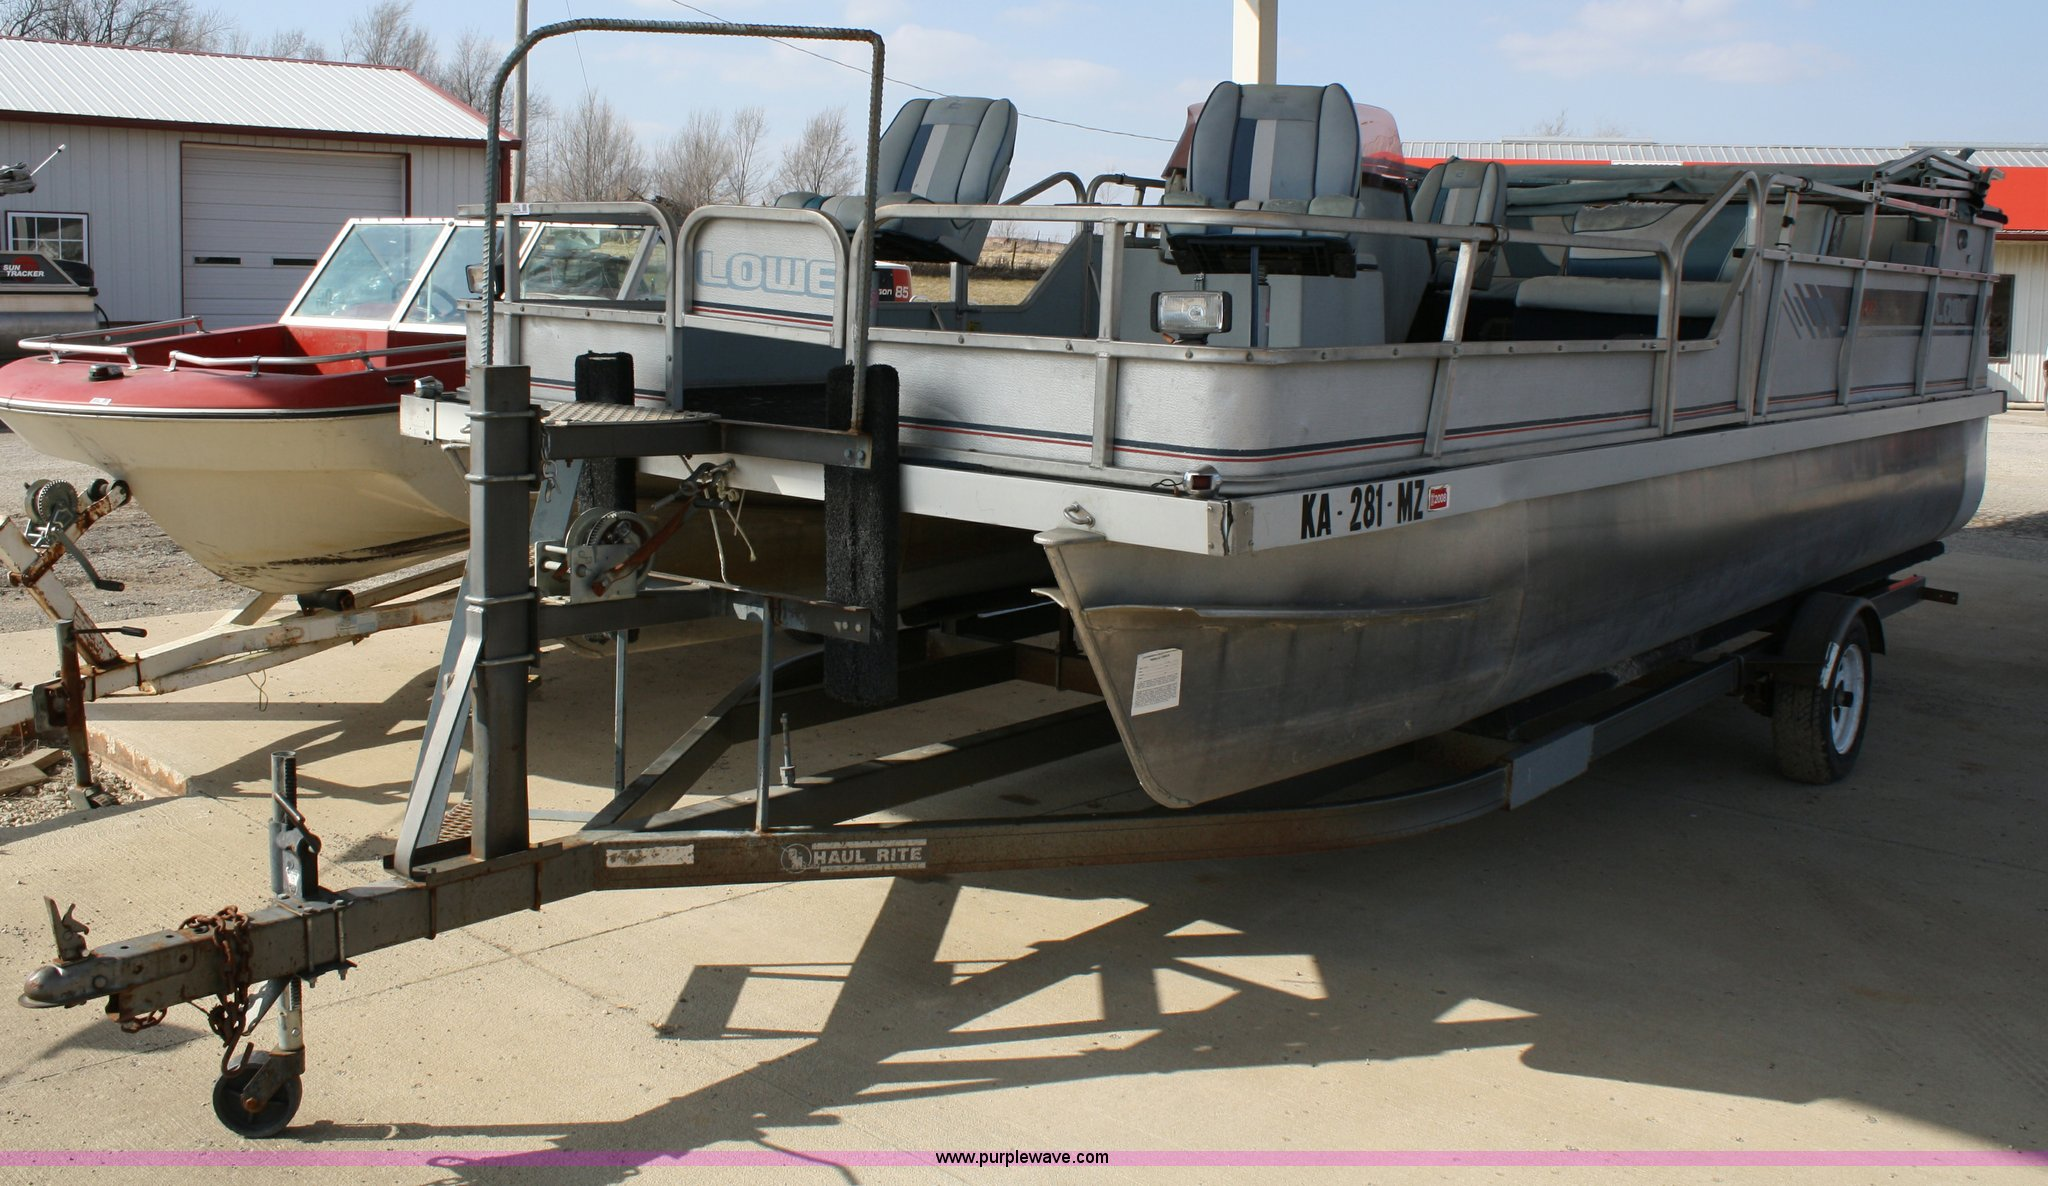 78 1989 Lowe Pontoon 24 With 2011 Trailer 70 Tahiti Wiring Diagram 4940 Image For Item 200 Boat